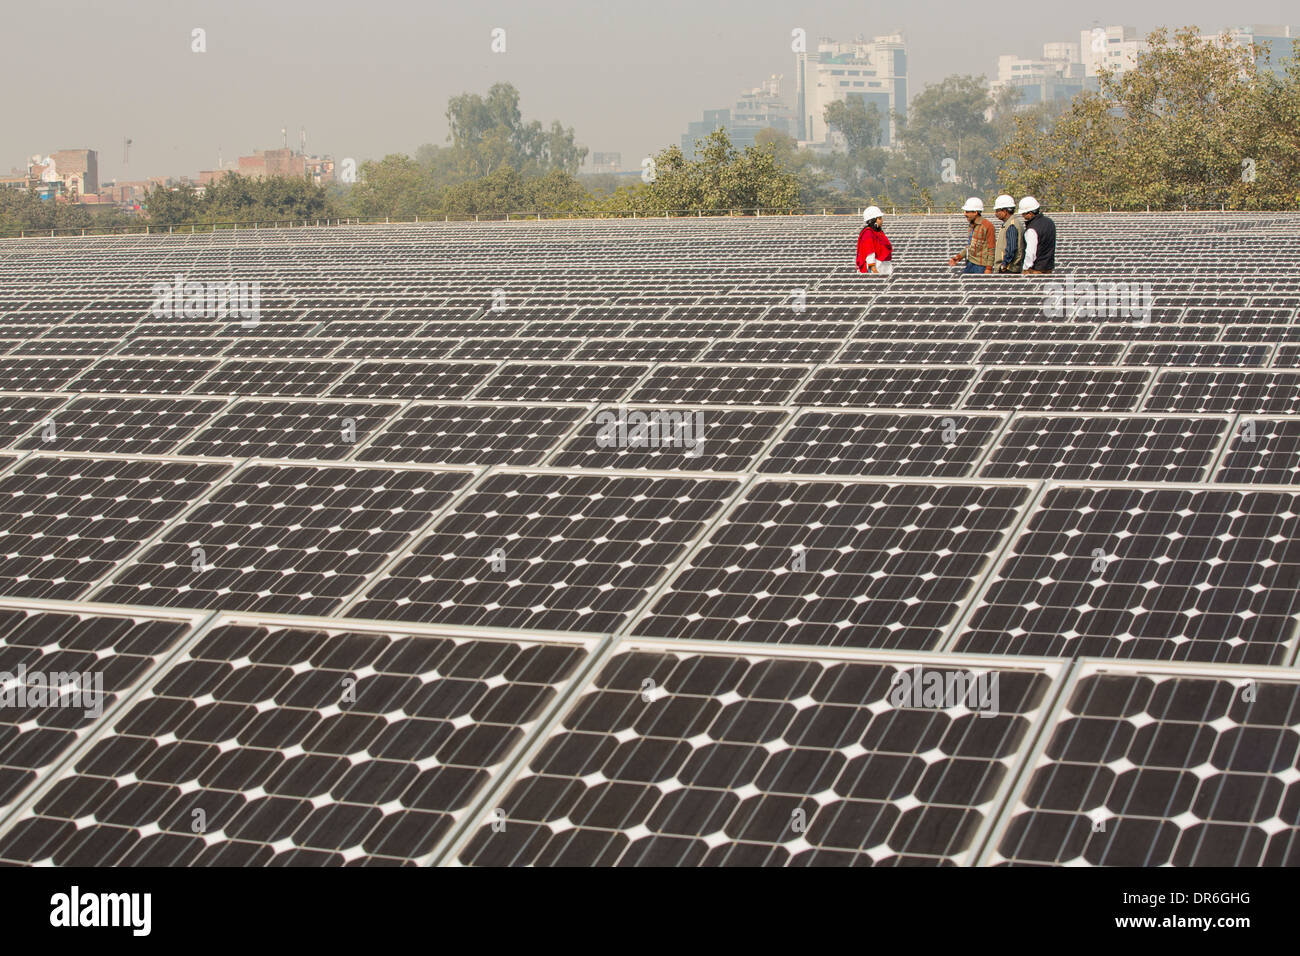 Workers at a 1 MW solar power station run by Tata power on the roof of an electricity company in Delhi, India. Stock Photo